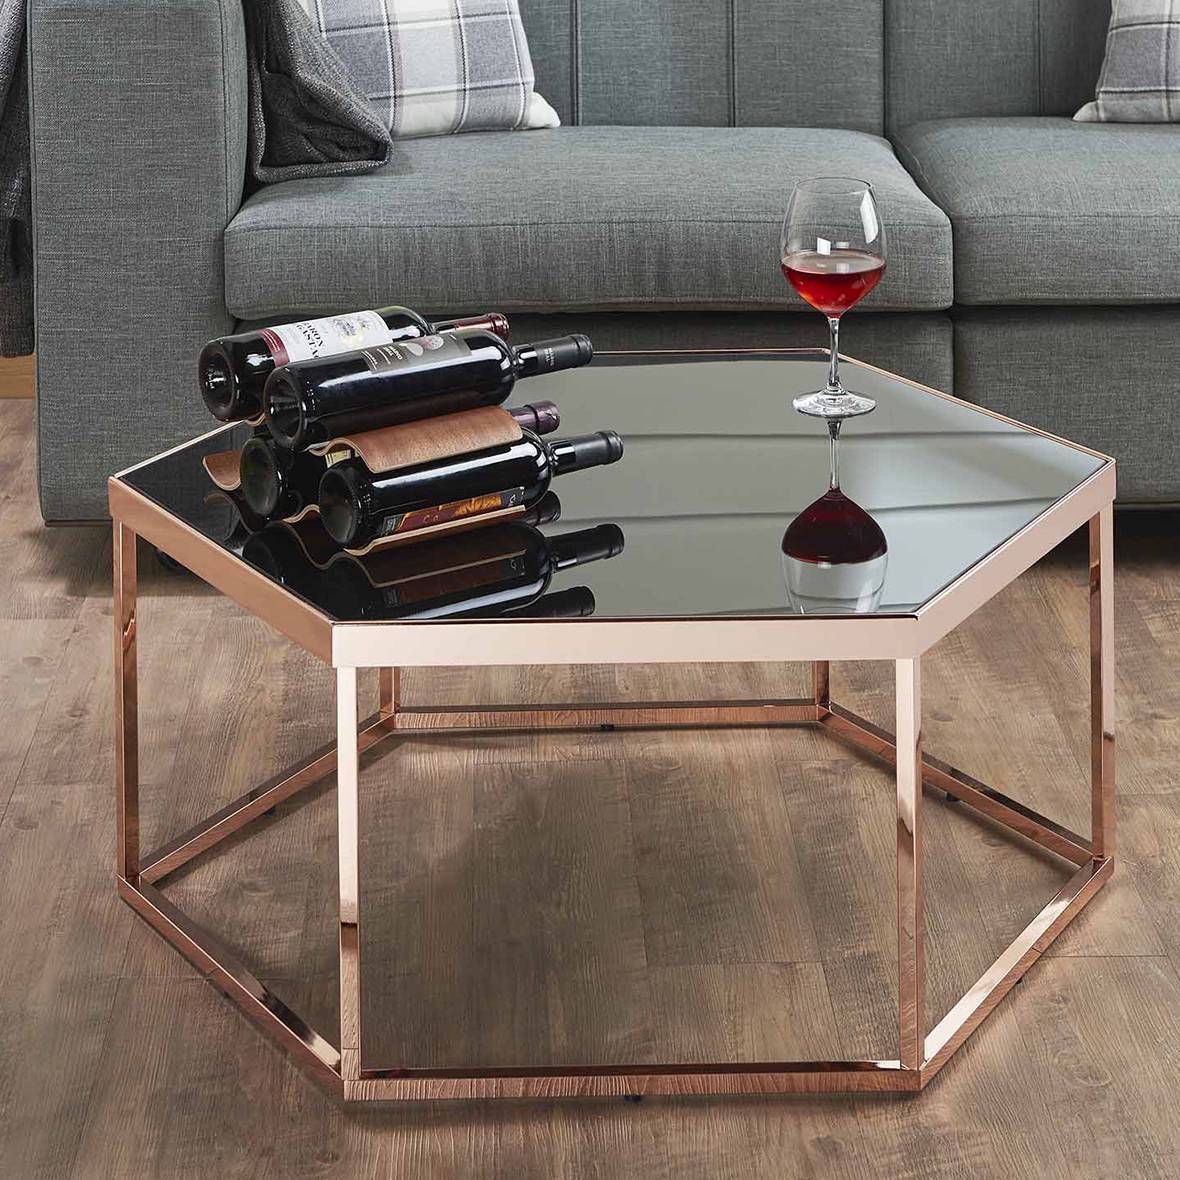 Sofa side table, hexagonal desk, rose gold table, a sense of quality, exquisite craftsmanship